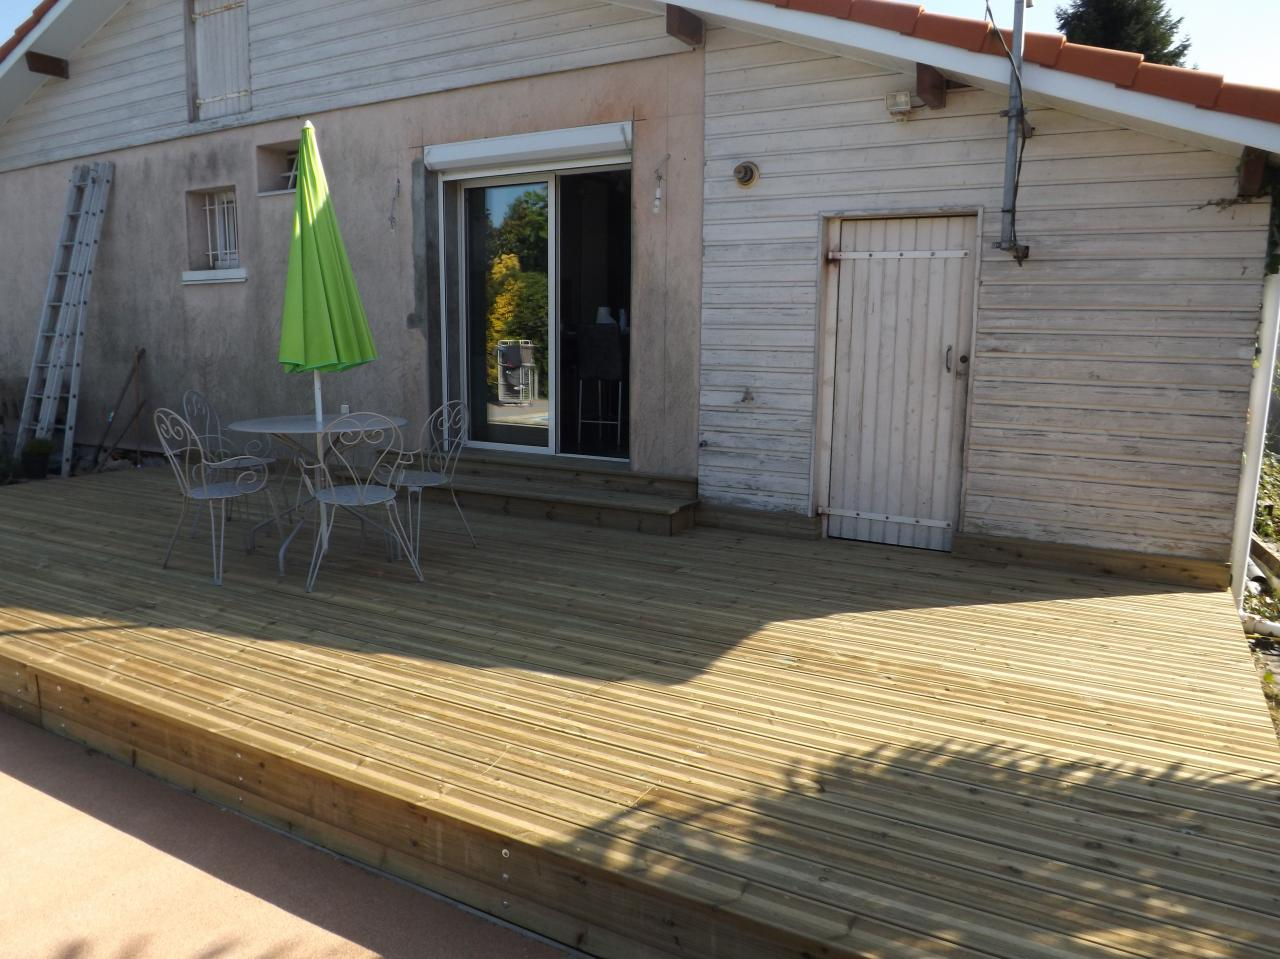 Terrasse en pin traité